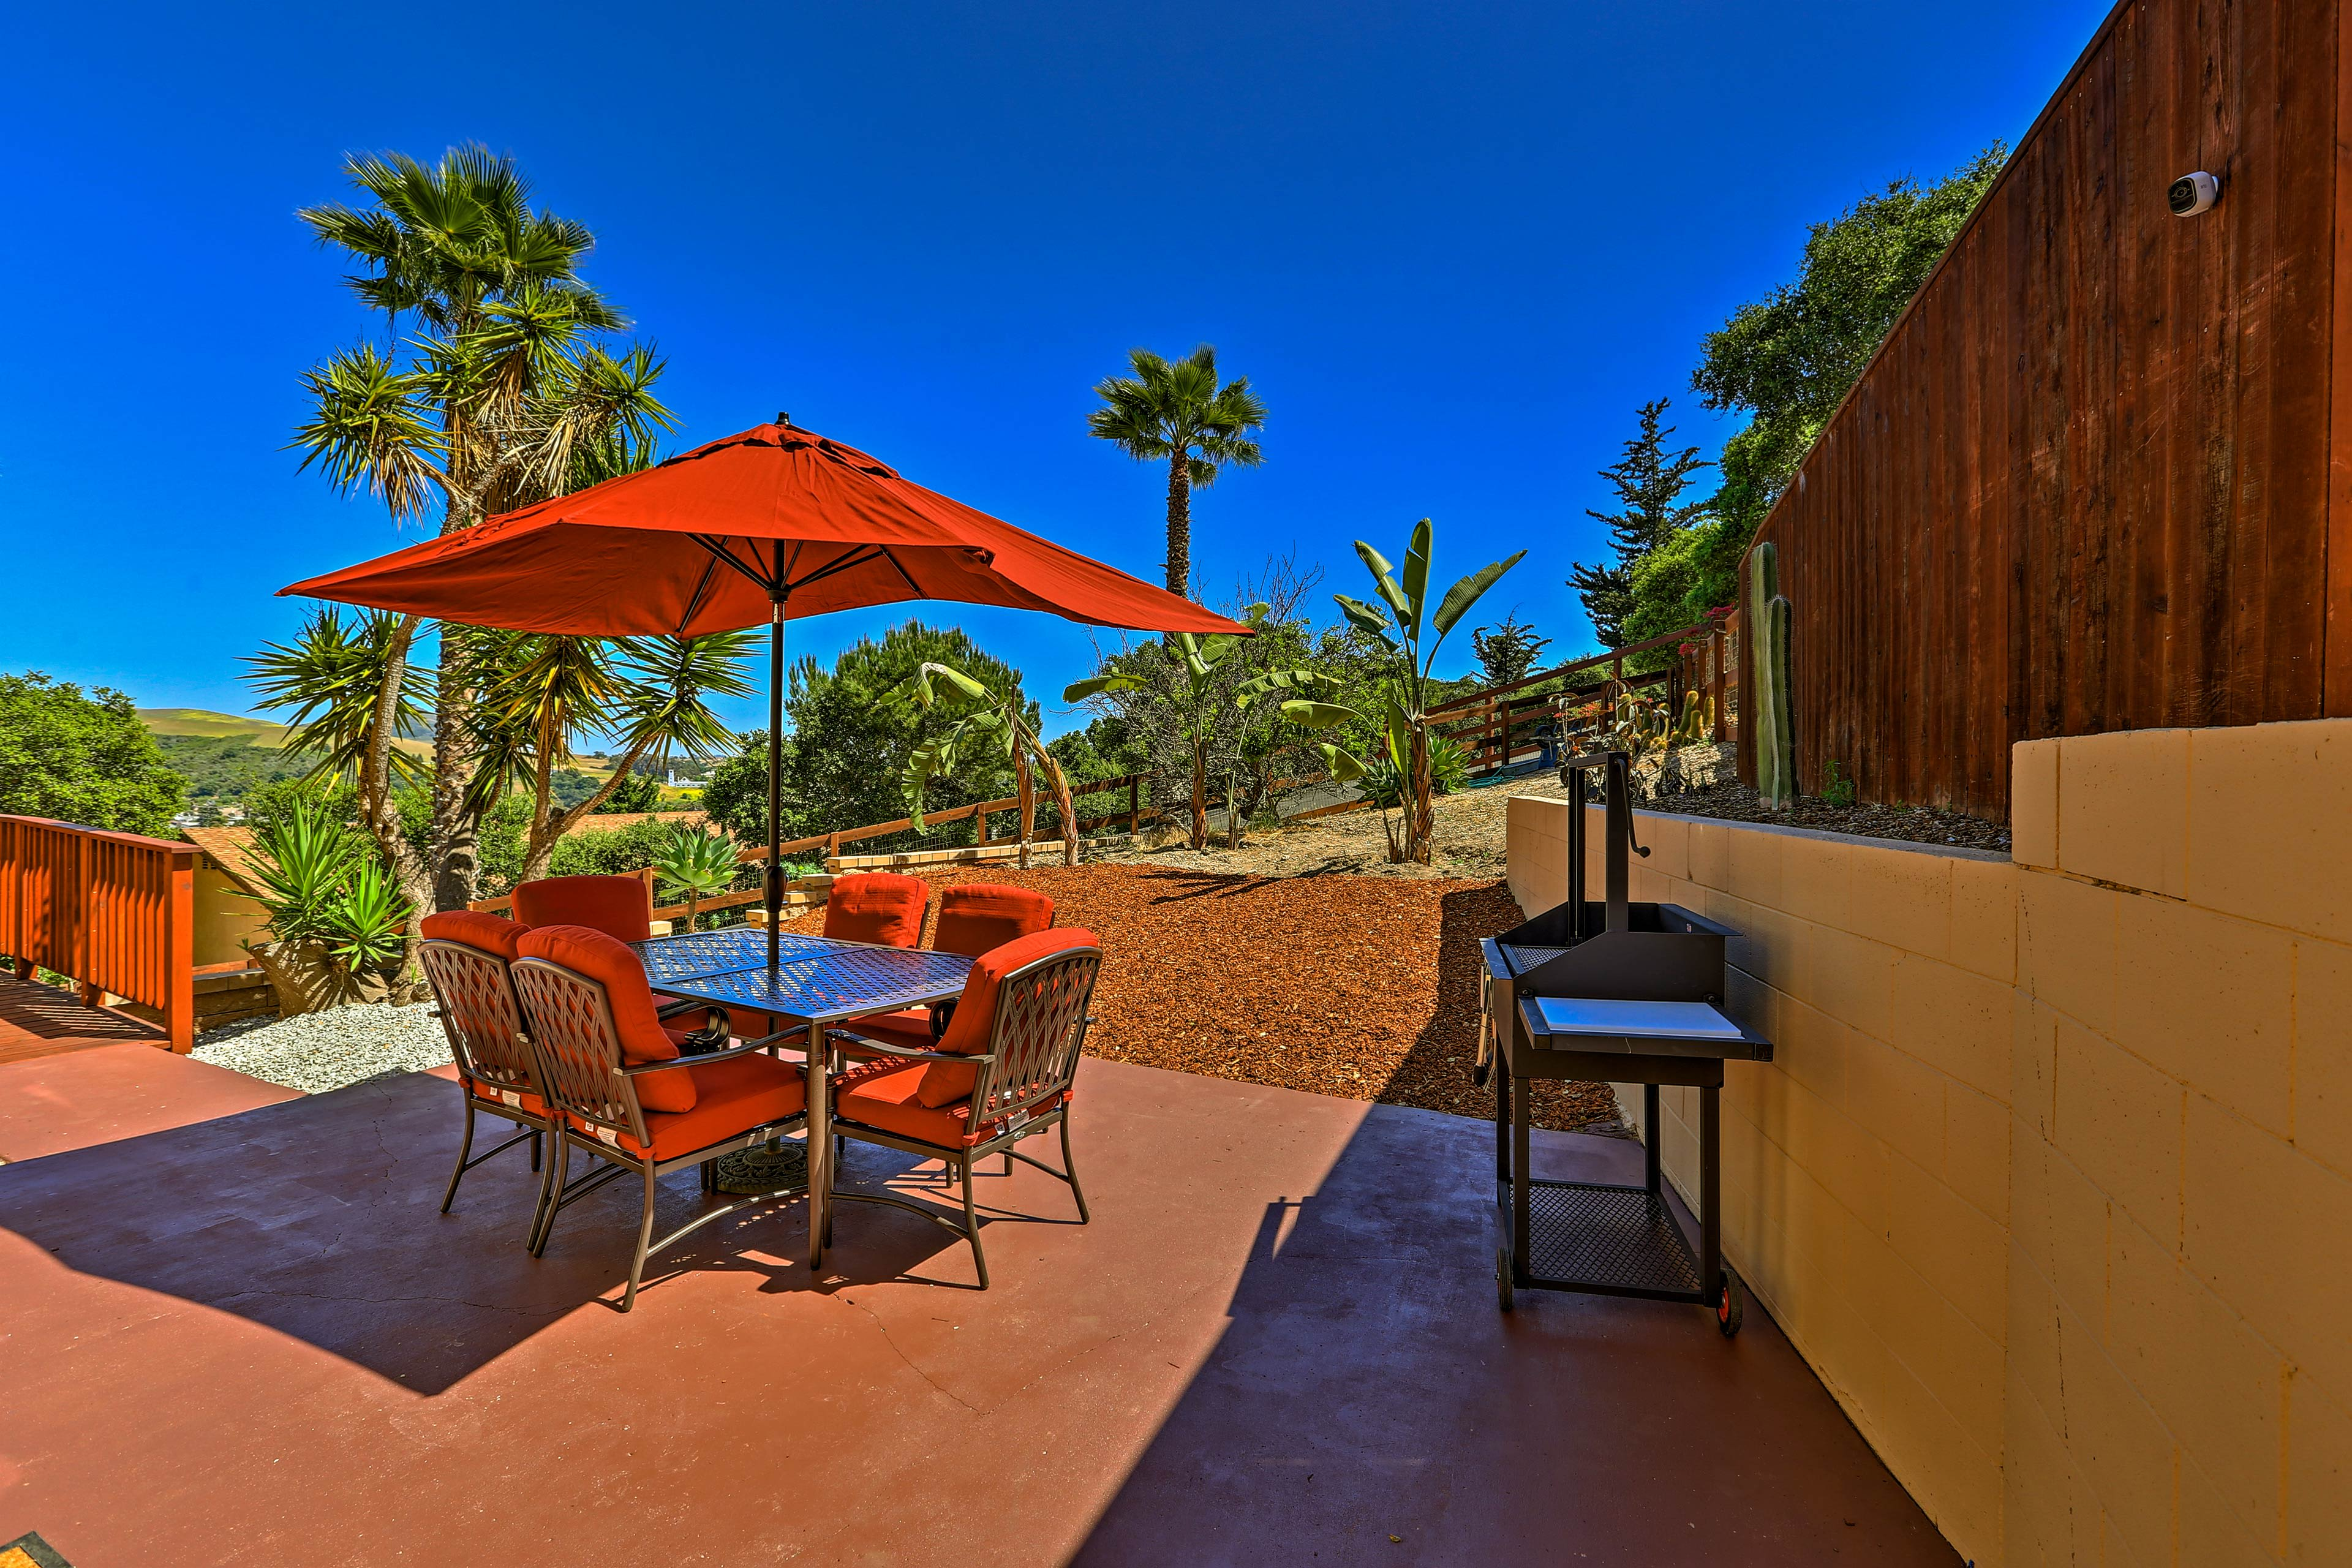 Bask in the California sunshine on your private outdoor oasis.